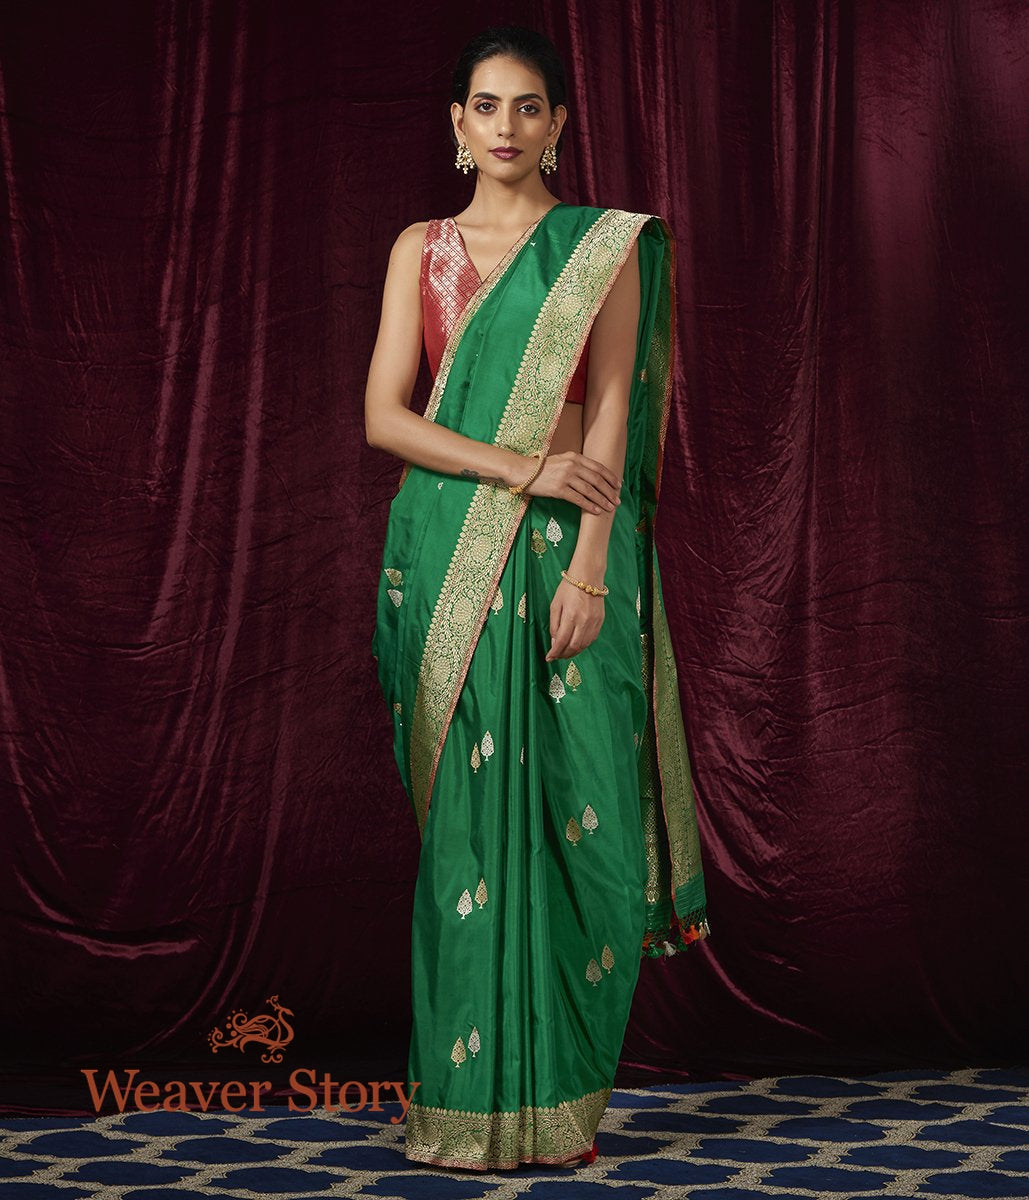 Handwoven Green Kadhwa Booti Saree with Twin Leaf Motif